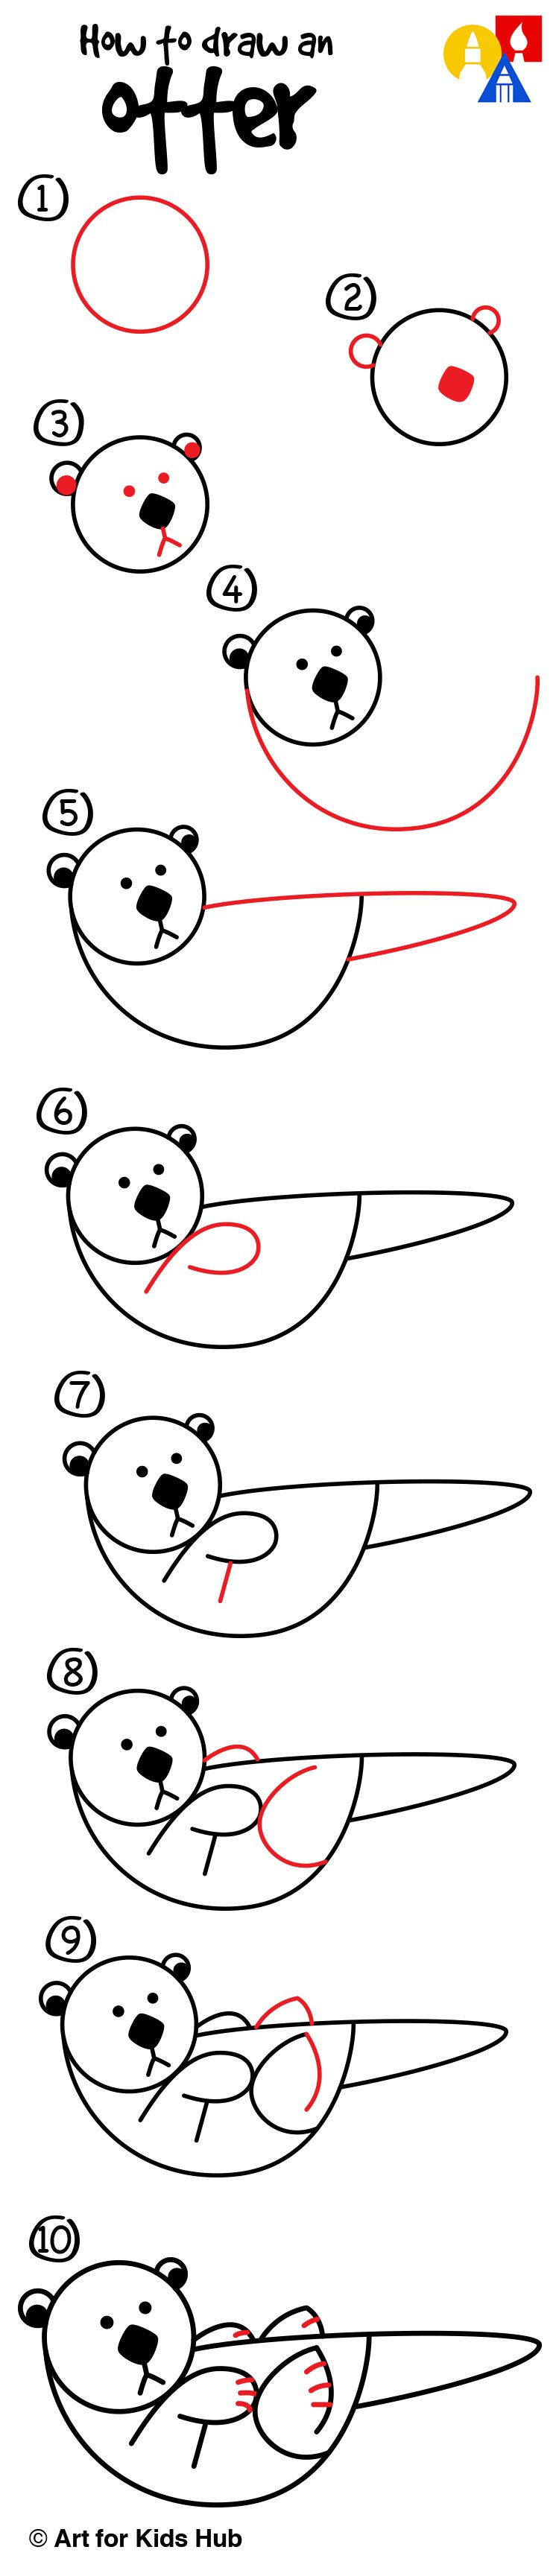 Uncategorized How To Draw An A how to draw an otter with shapes art for kids hub otters learn this is a super fun activity do your young artists all you need something dra